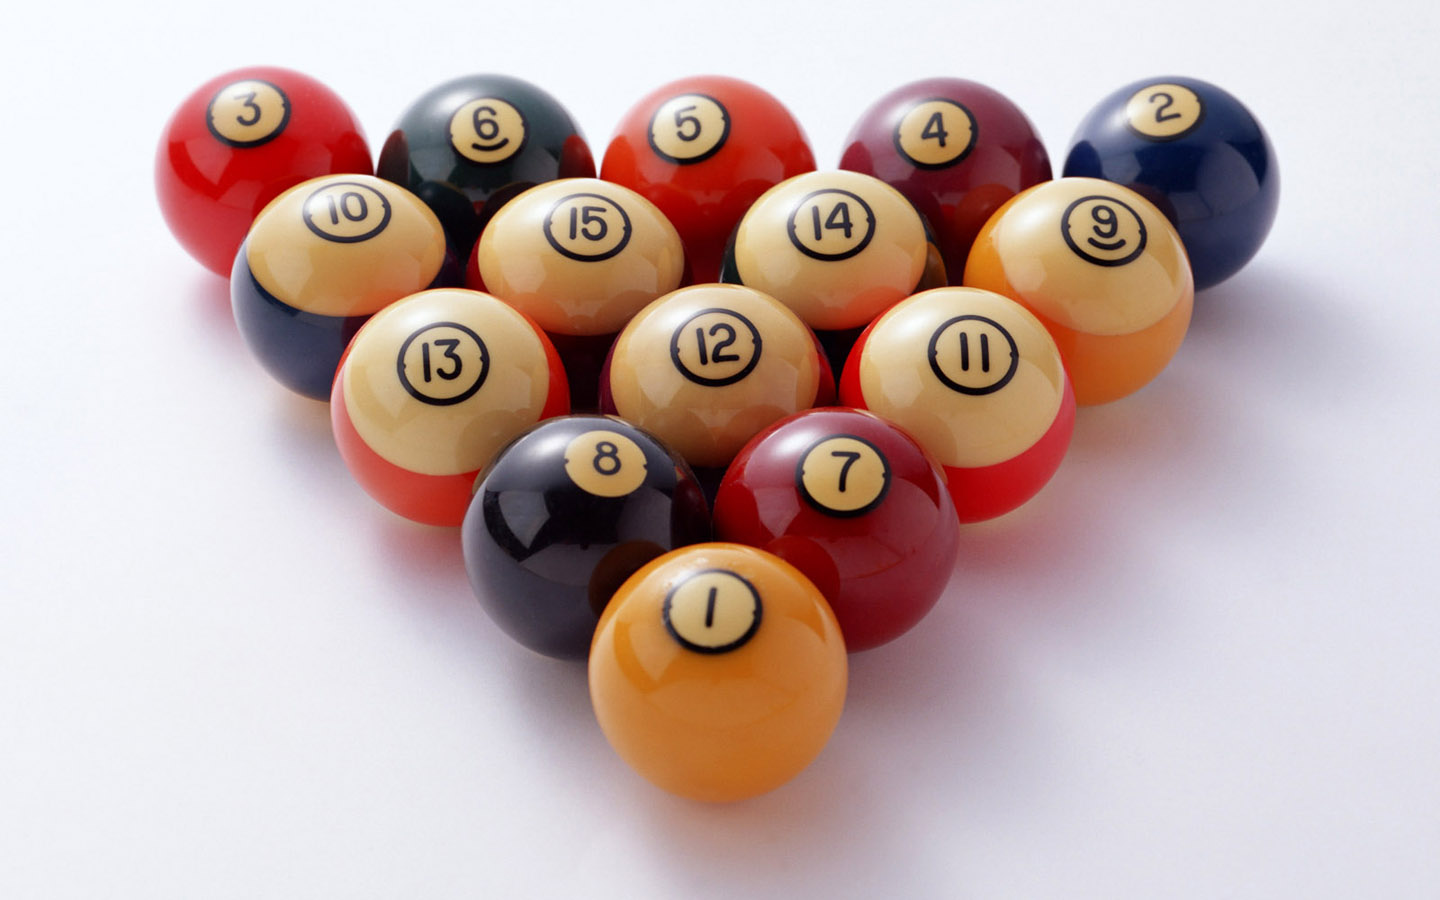 Billiards Balls in a Triangle 96.41 Kb